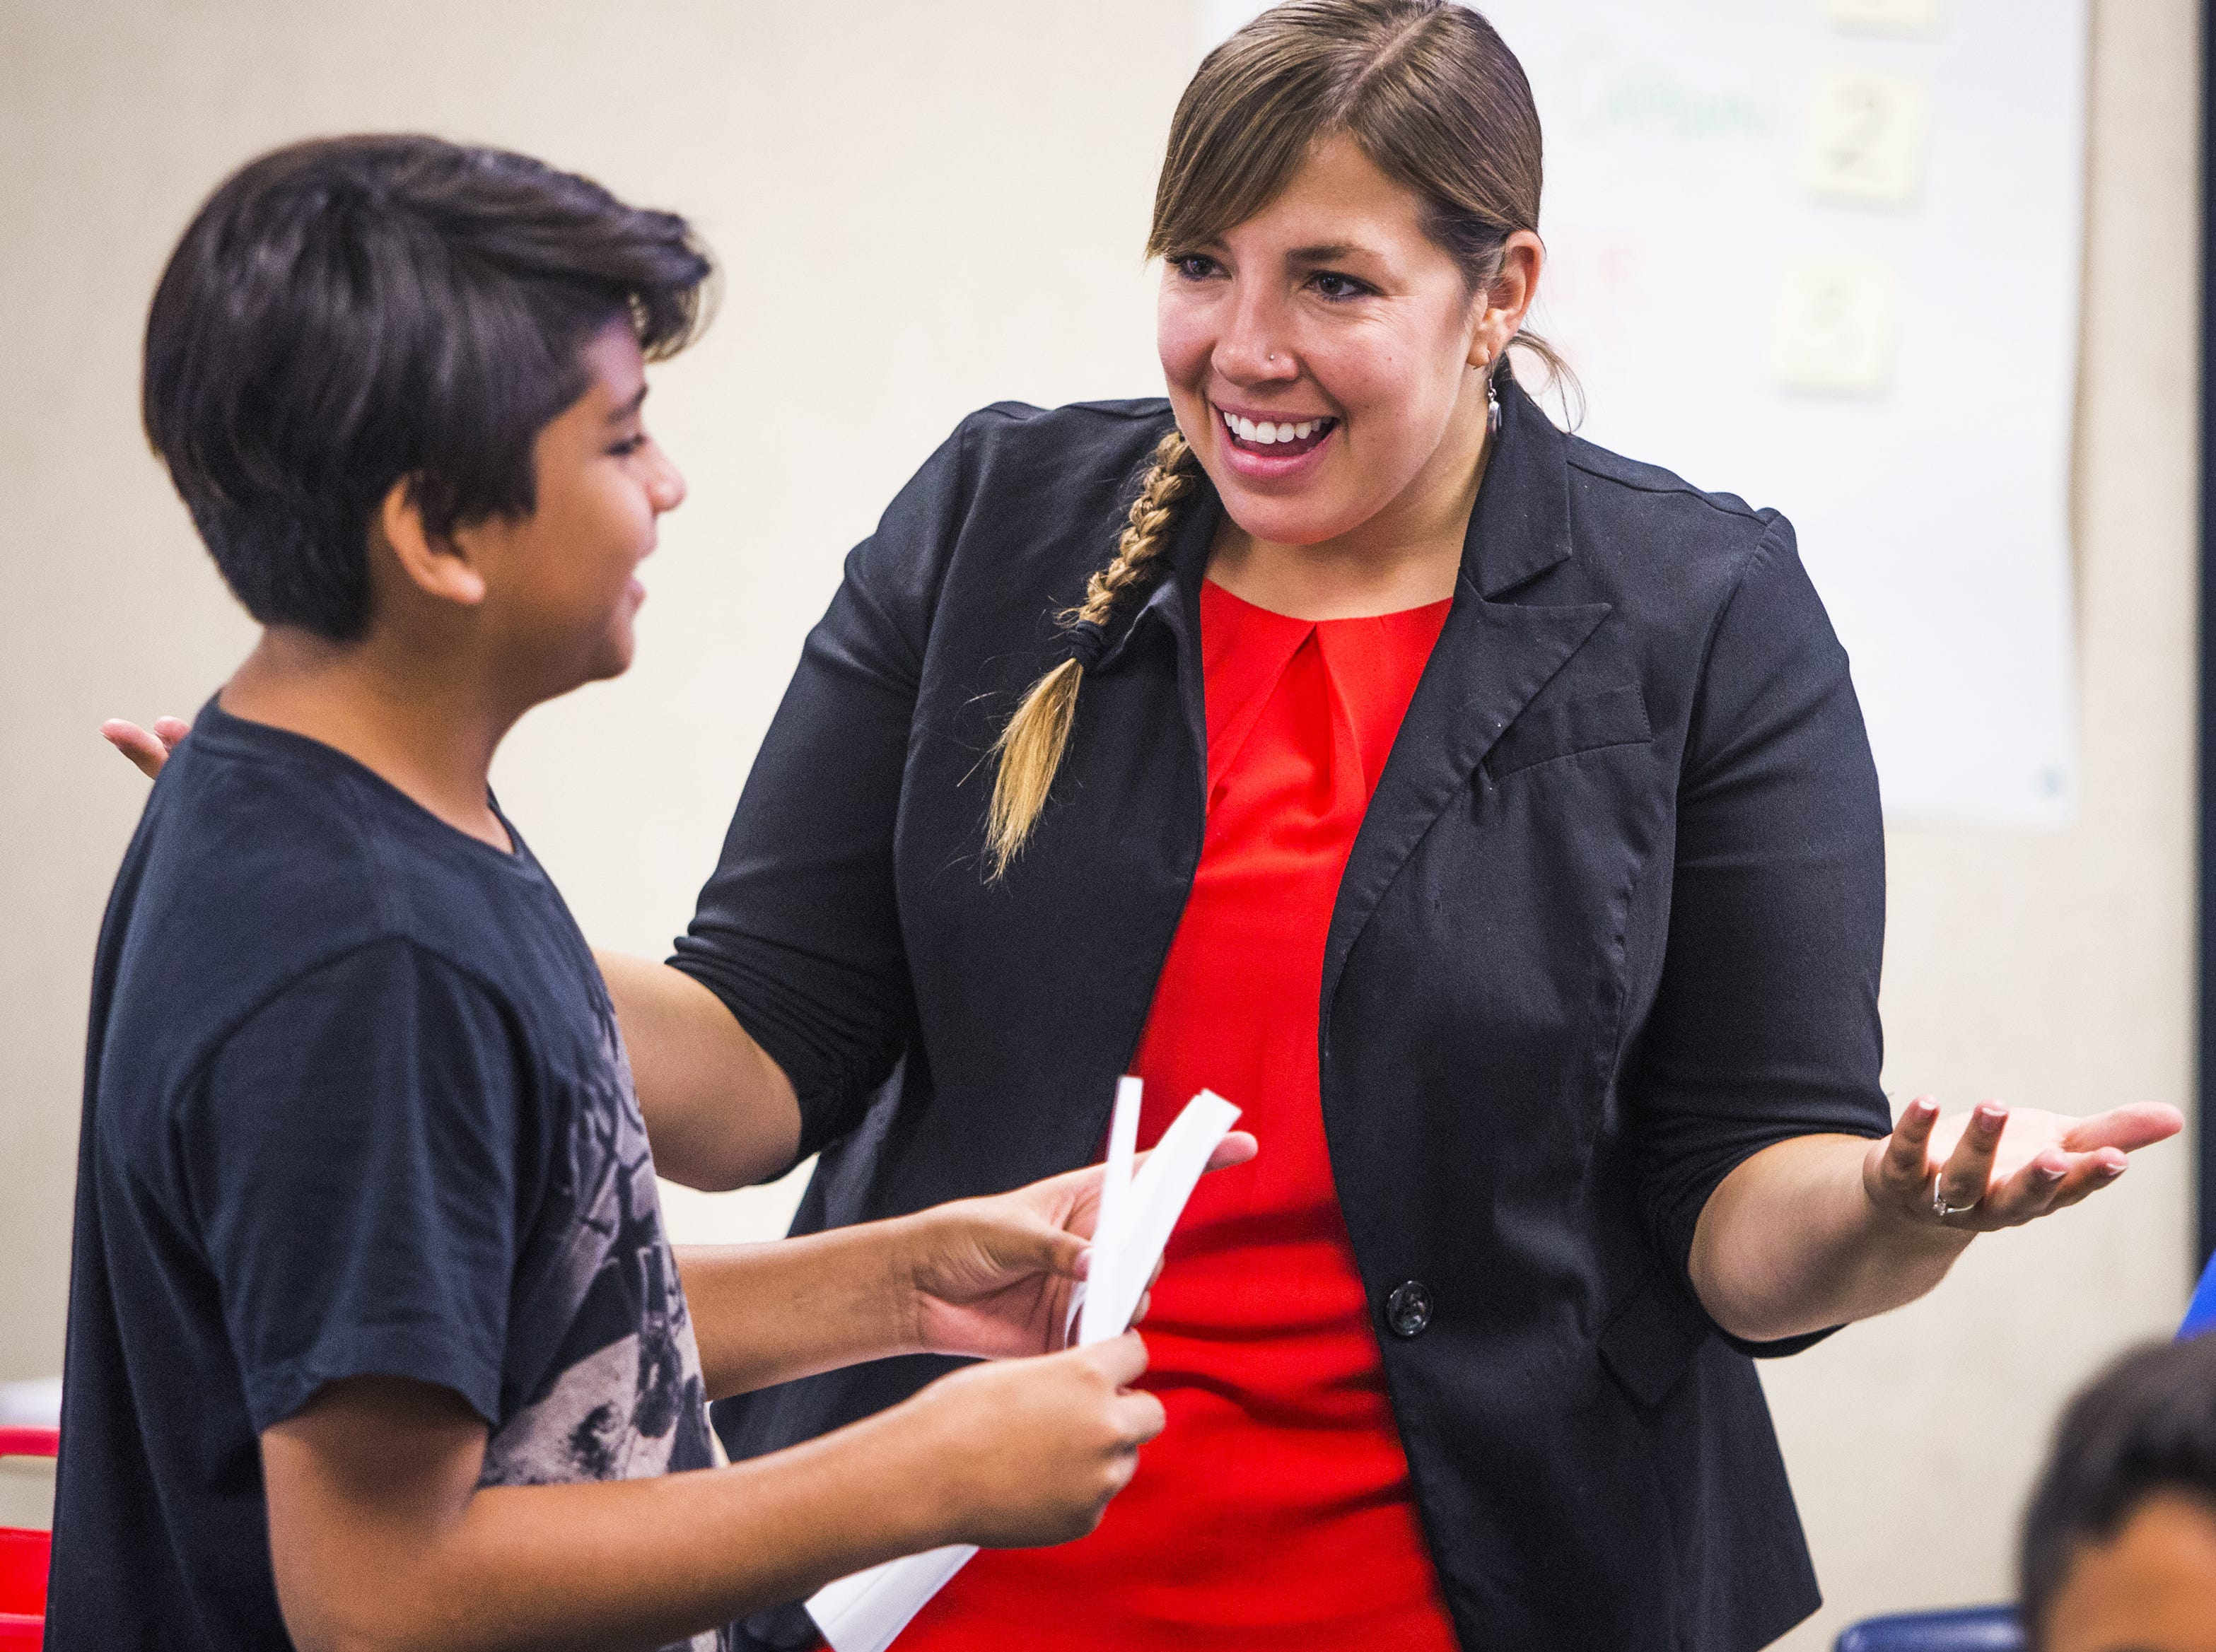 Rebecca Garelli speaks with Giovanni Romero Rodriguez, 11, during 6th grade science class at Sevilla West Elementary School in Phoenix, Arizona, Monday morning, September 17, 2018.  Garelli has been one of the leaders of the #RedforEd movement, demanding increased funding for education in Arizona.